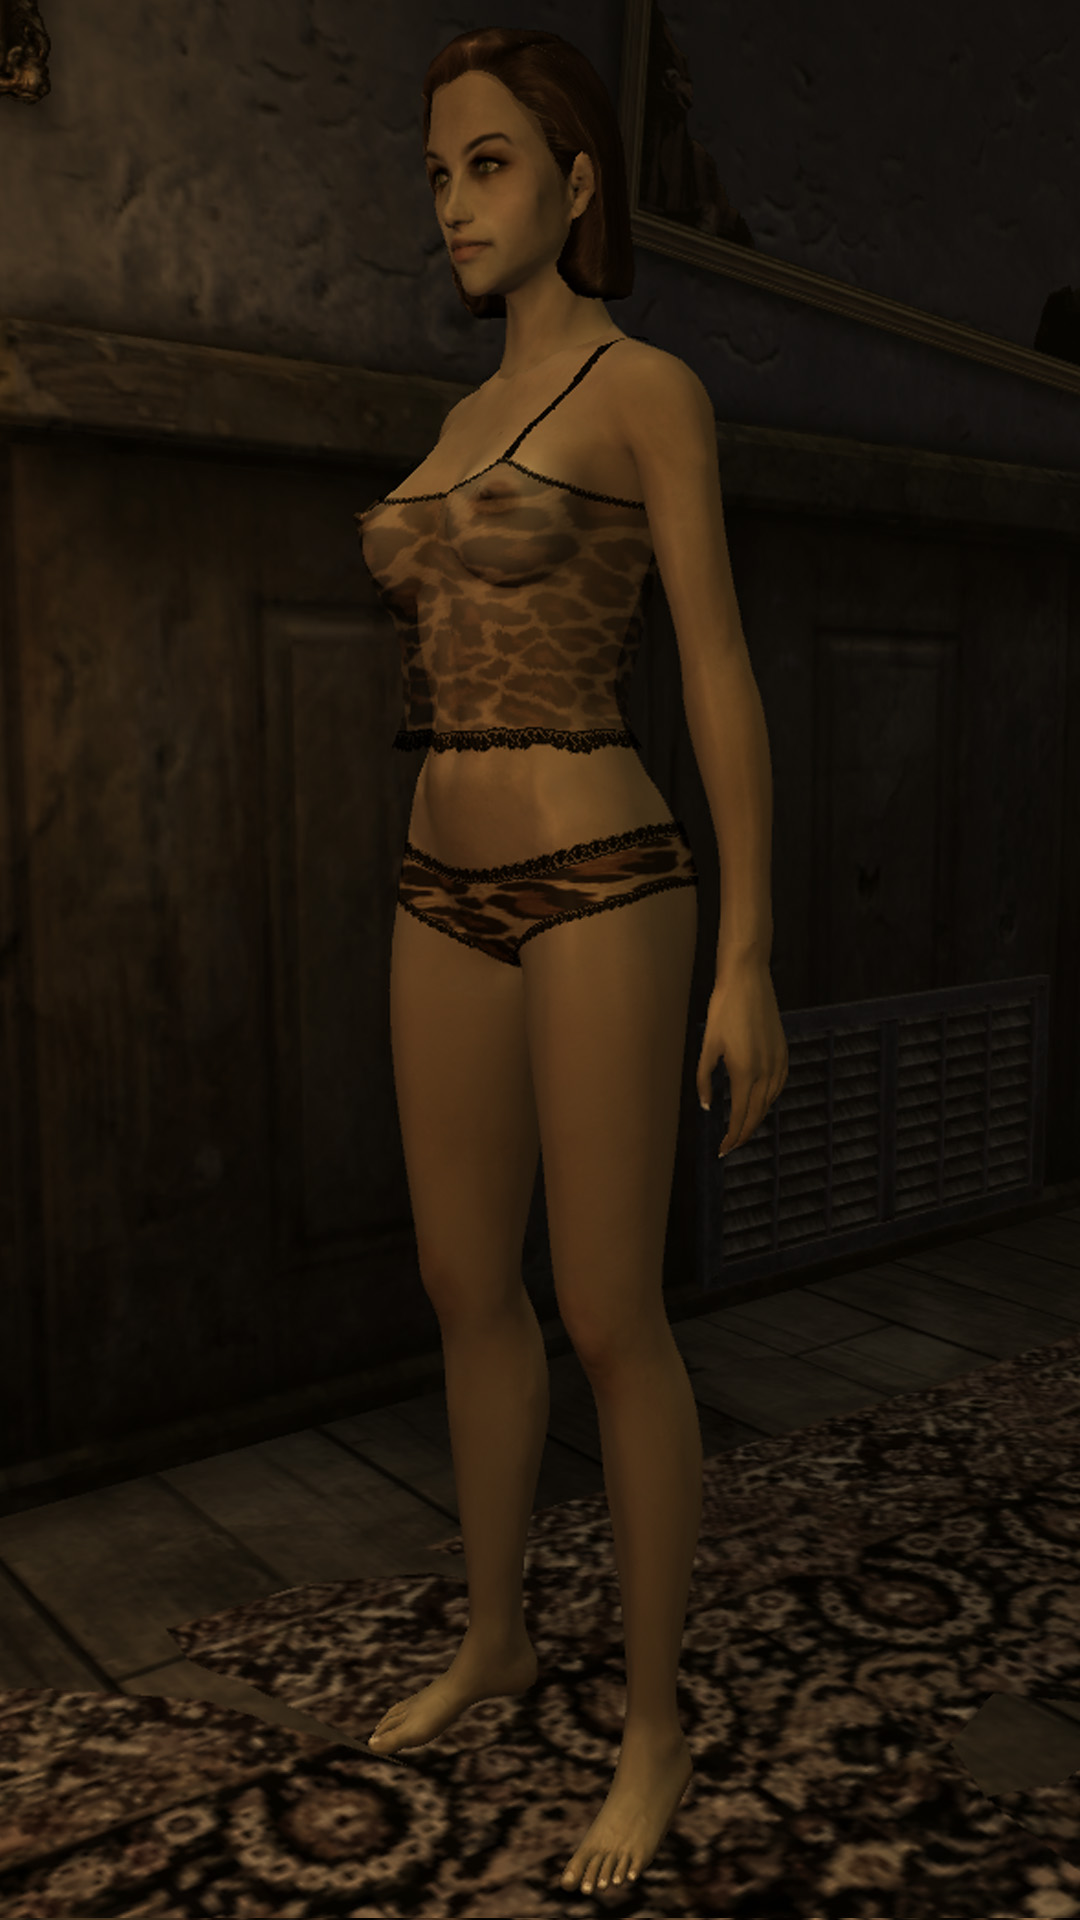 Fallout 3 mods nudity adult image